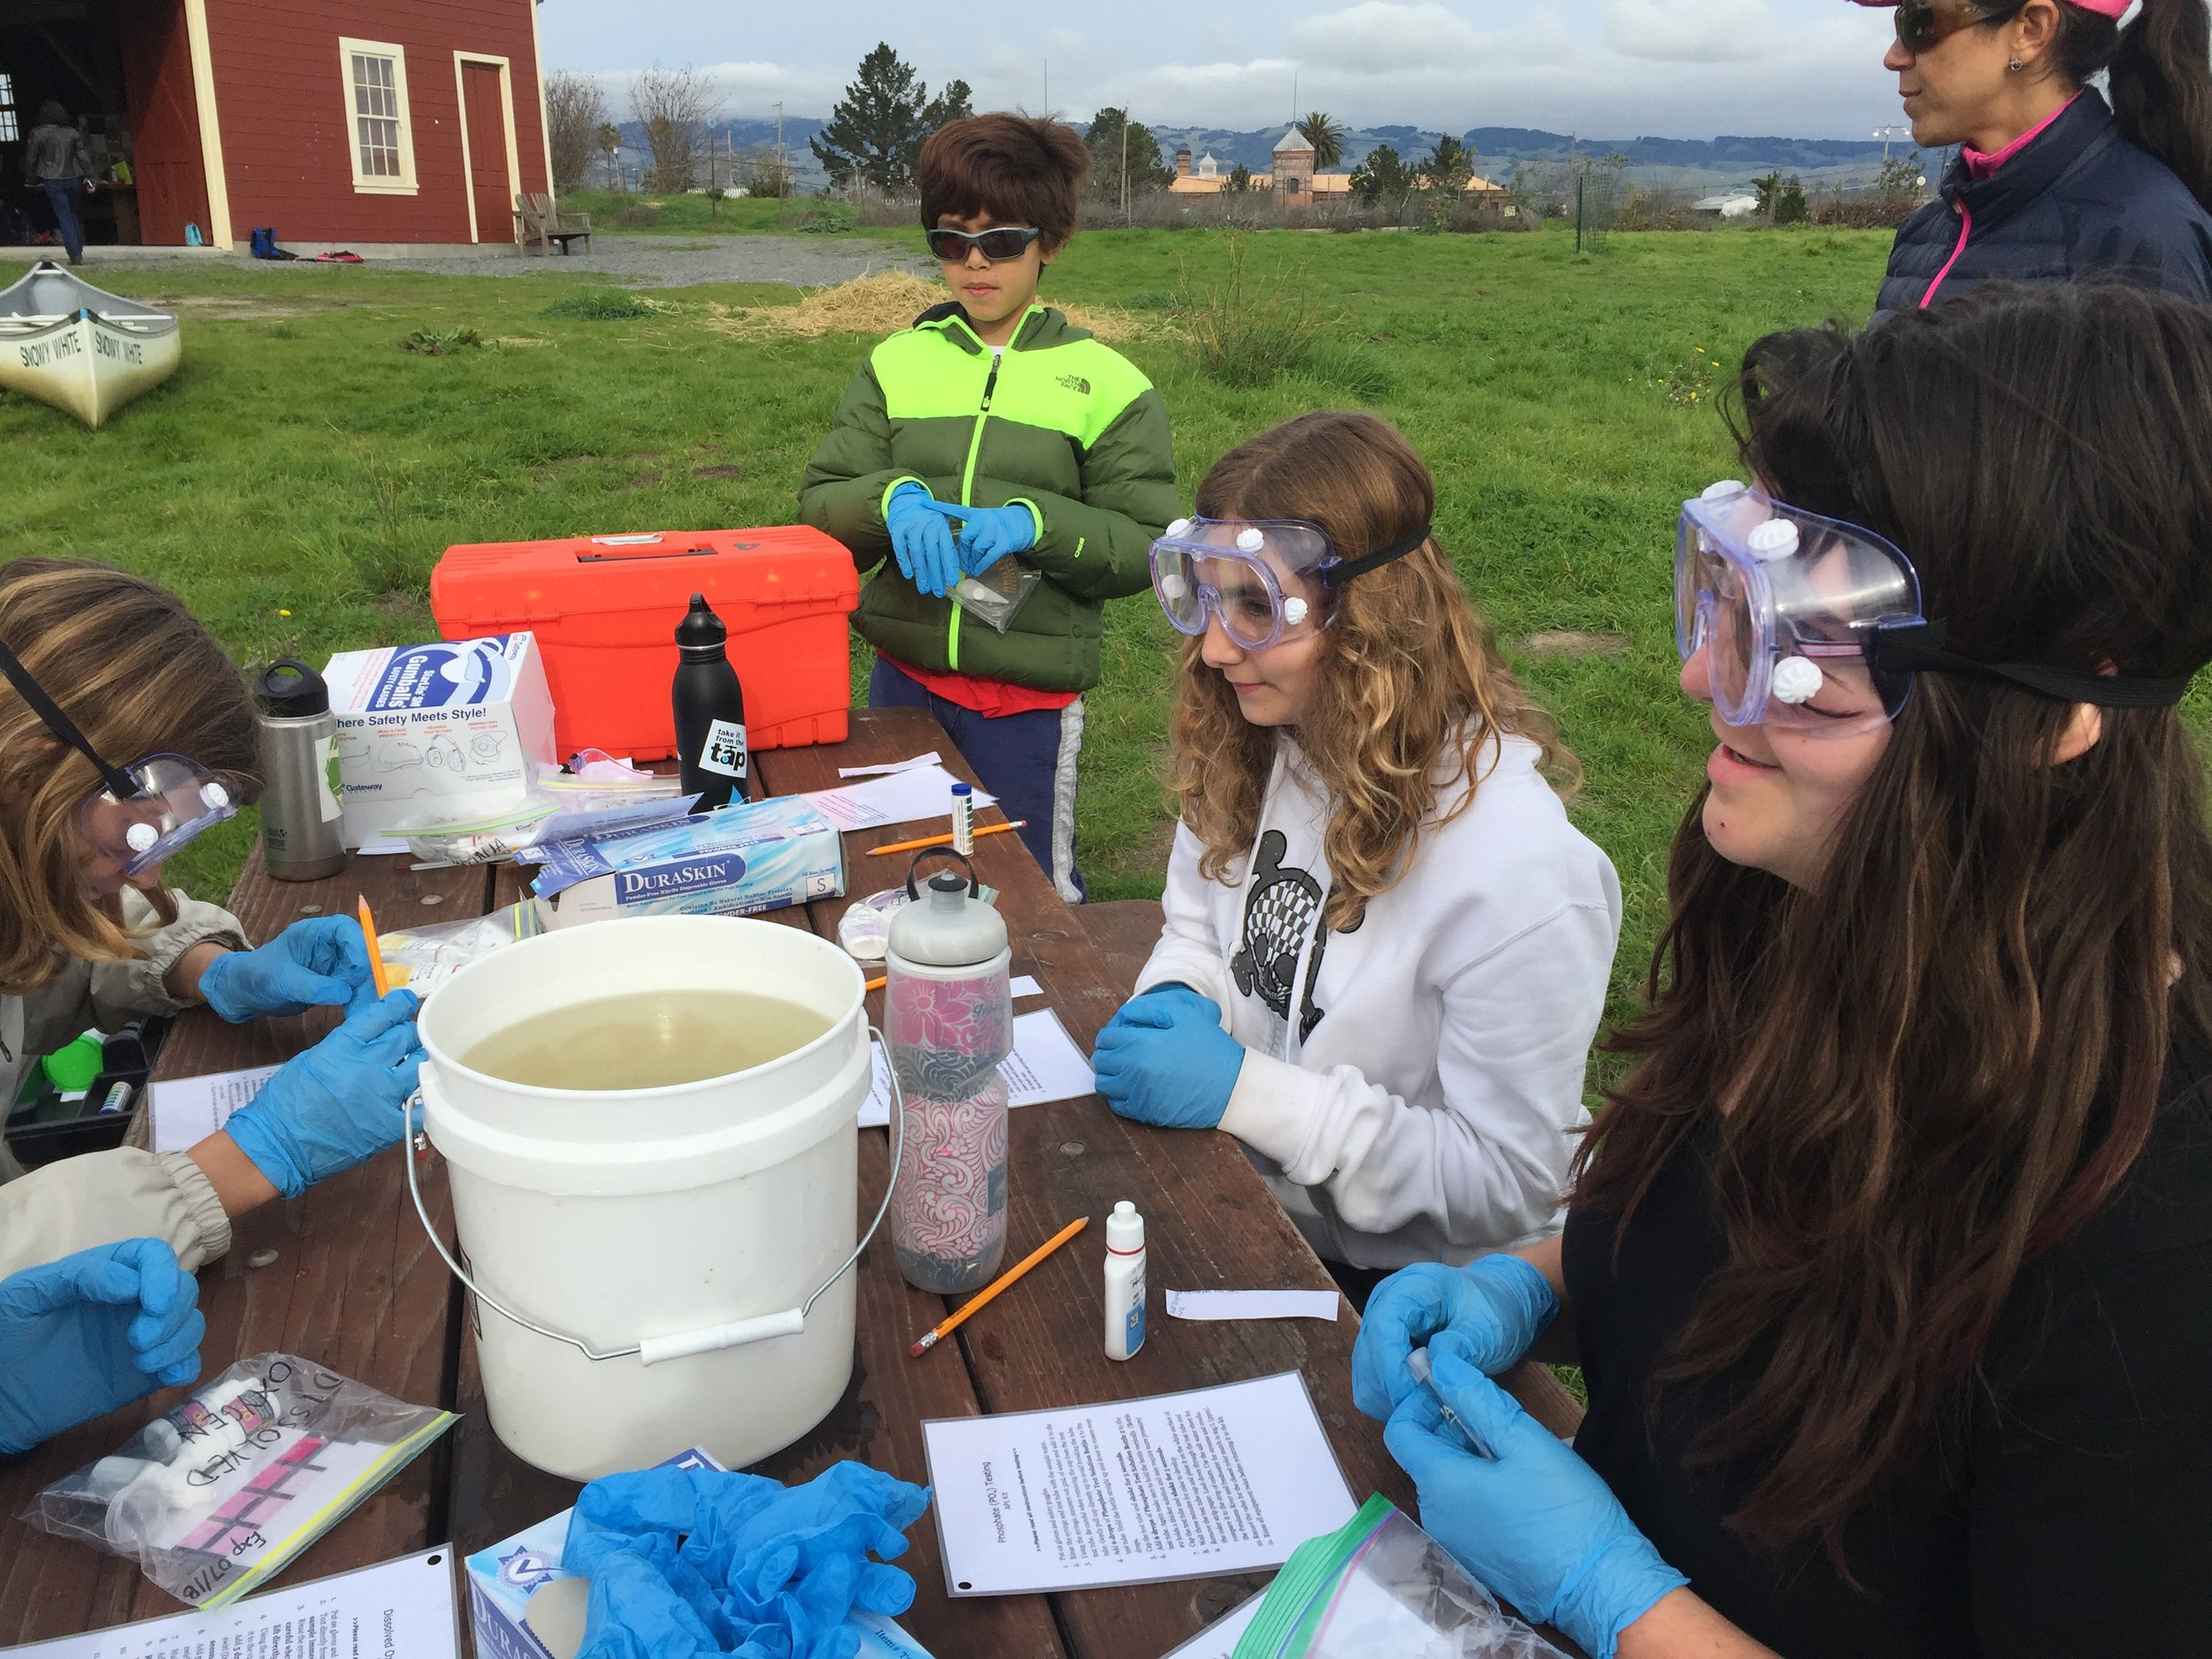 Students water testing at the David Yearsley River Heritage Center.